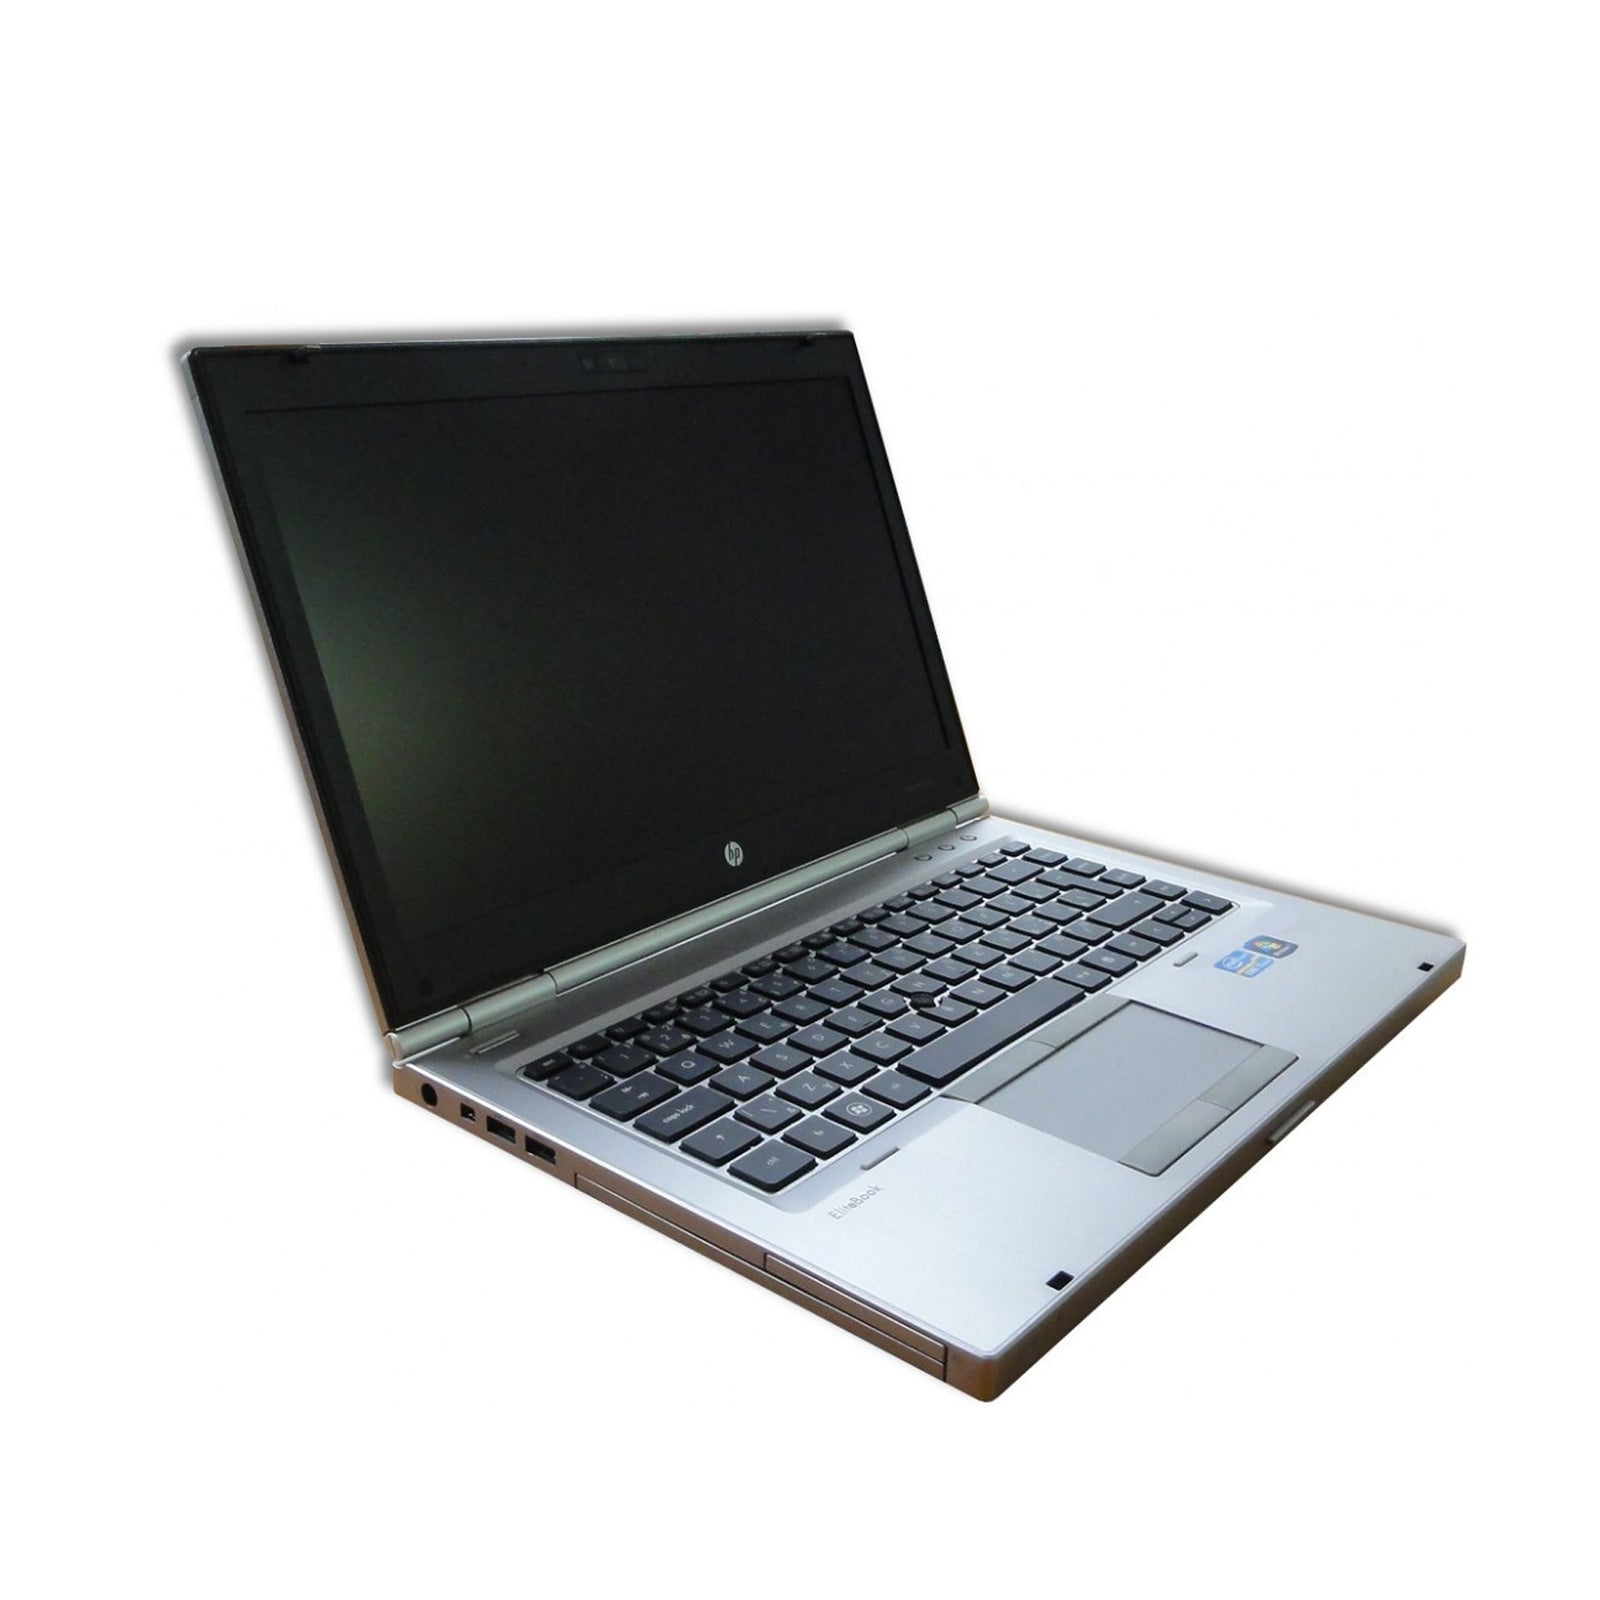 HP Elitebook 8470p - Core i5 2.6 GHz, 8 GB RAM, 500 GB HDD, DVDRW, Windows 7 Pro